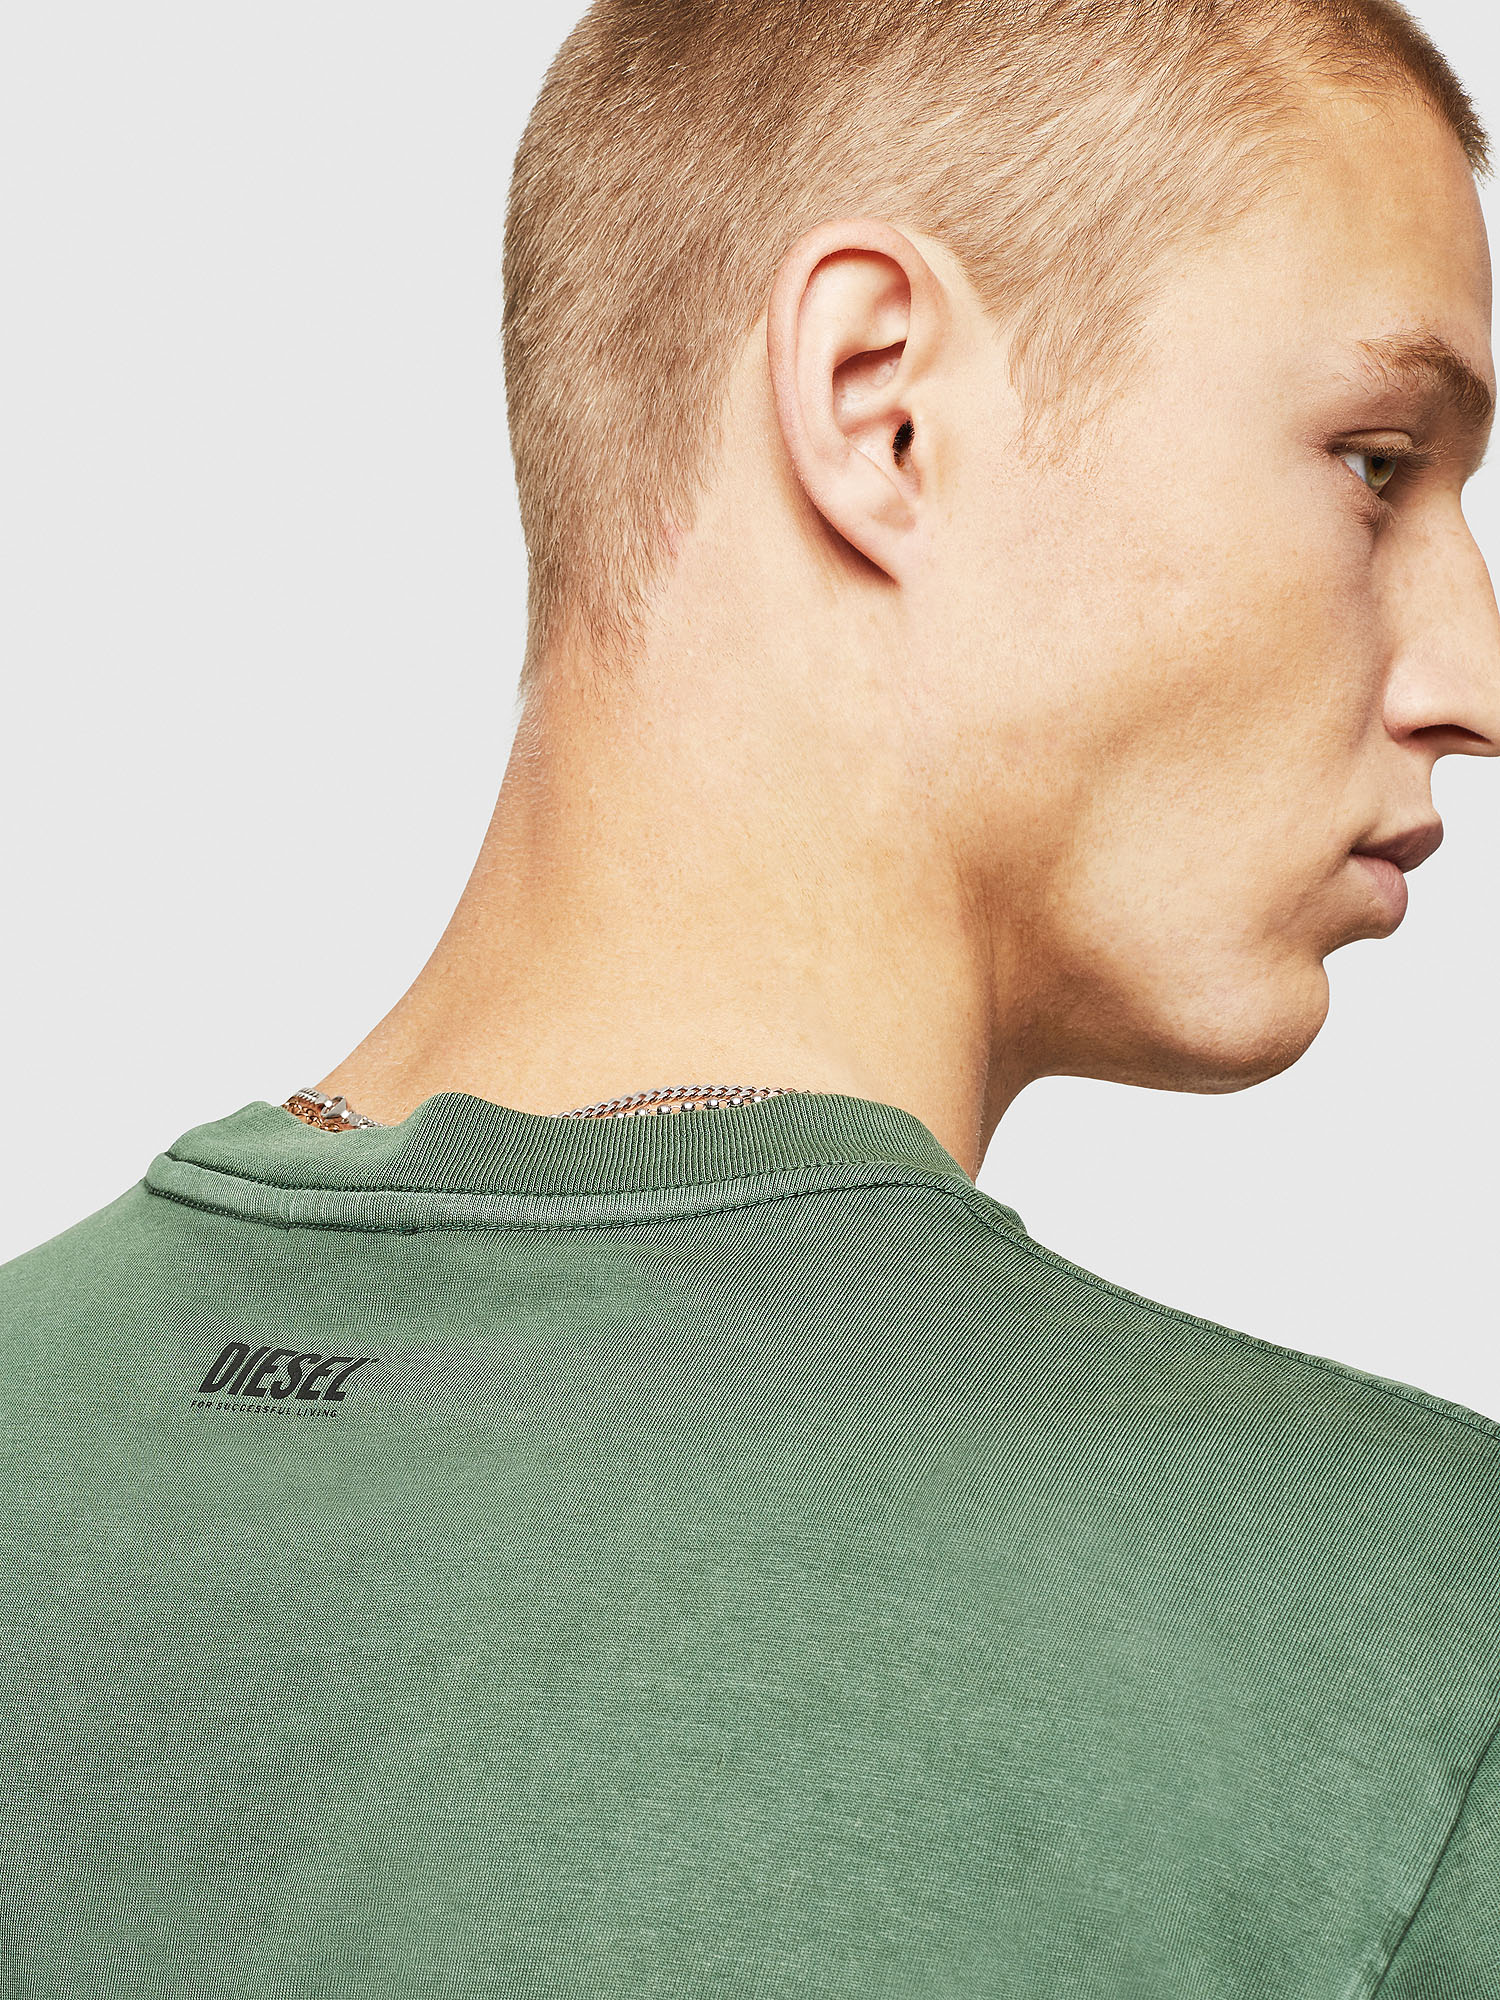 Diesel - T-THURE,  - T-Shirts - Image 3